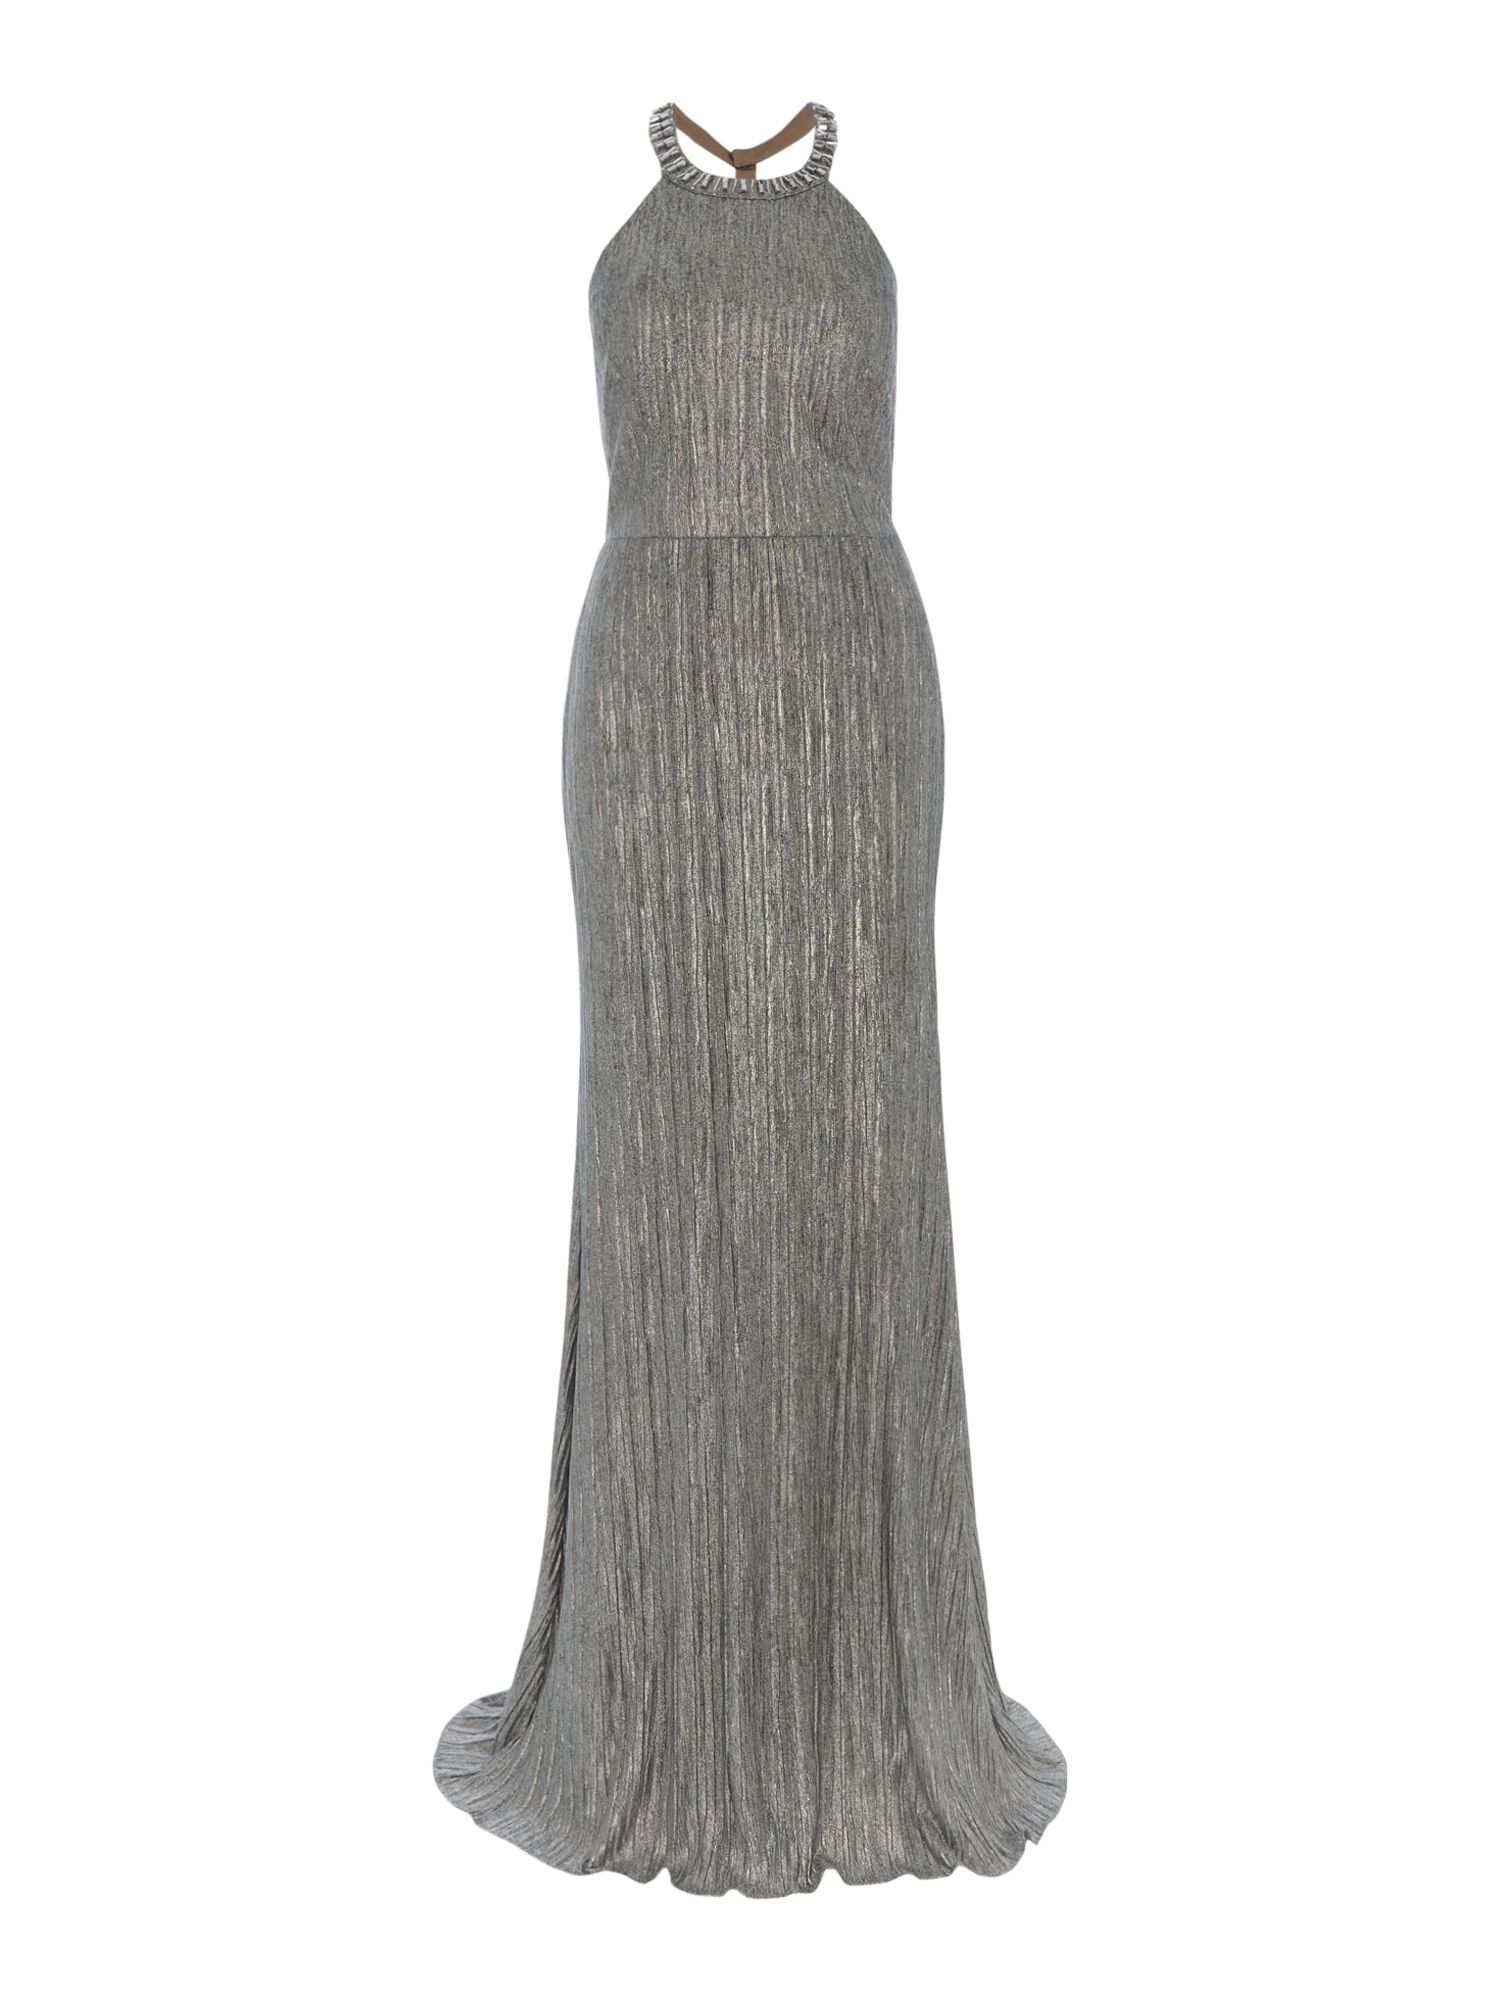 Adrianna Papell Backless Jewelled Metallic Long Gown, Silver